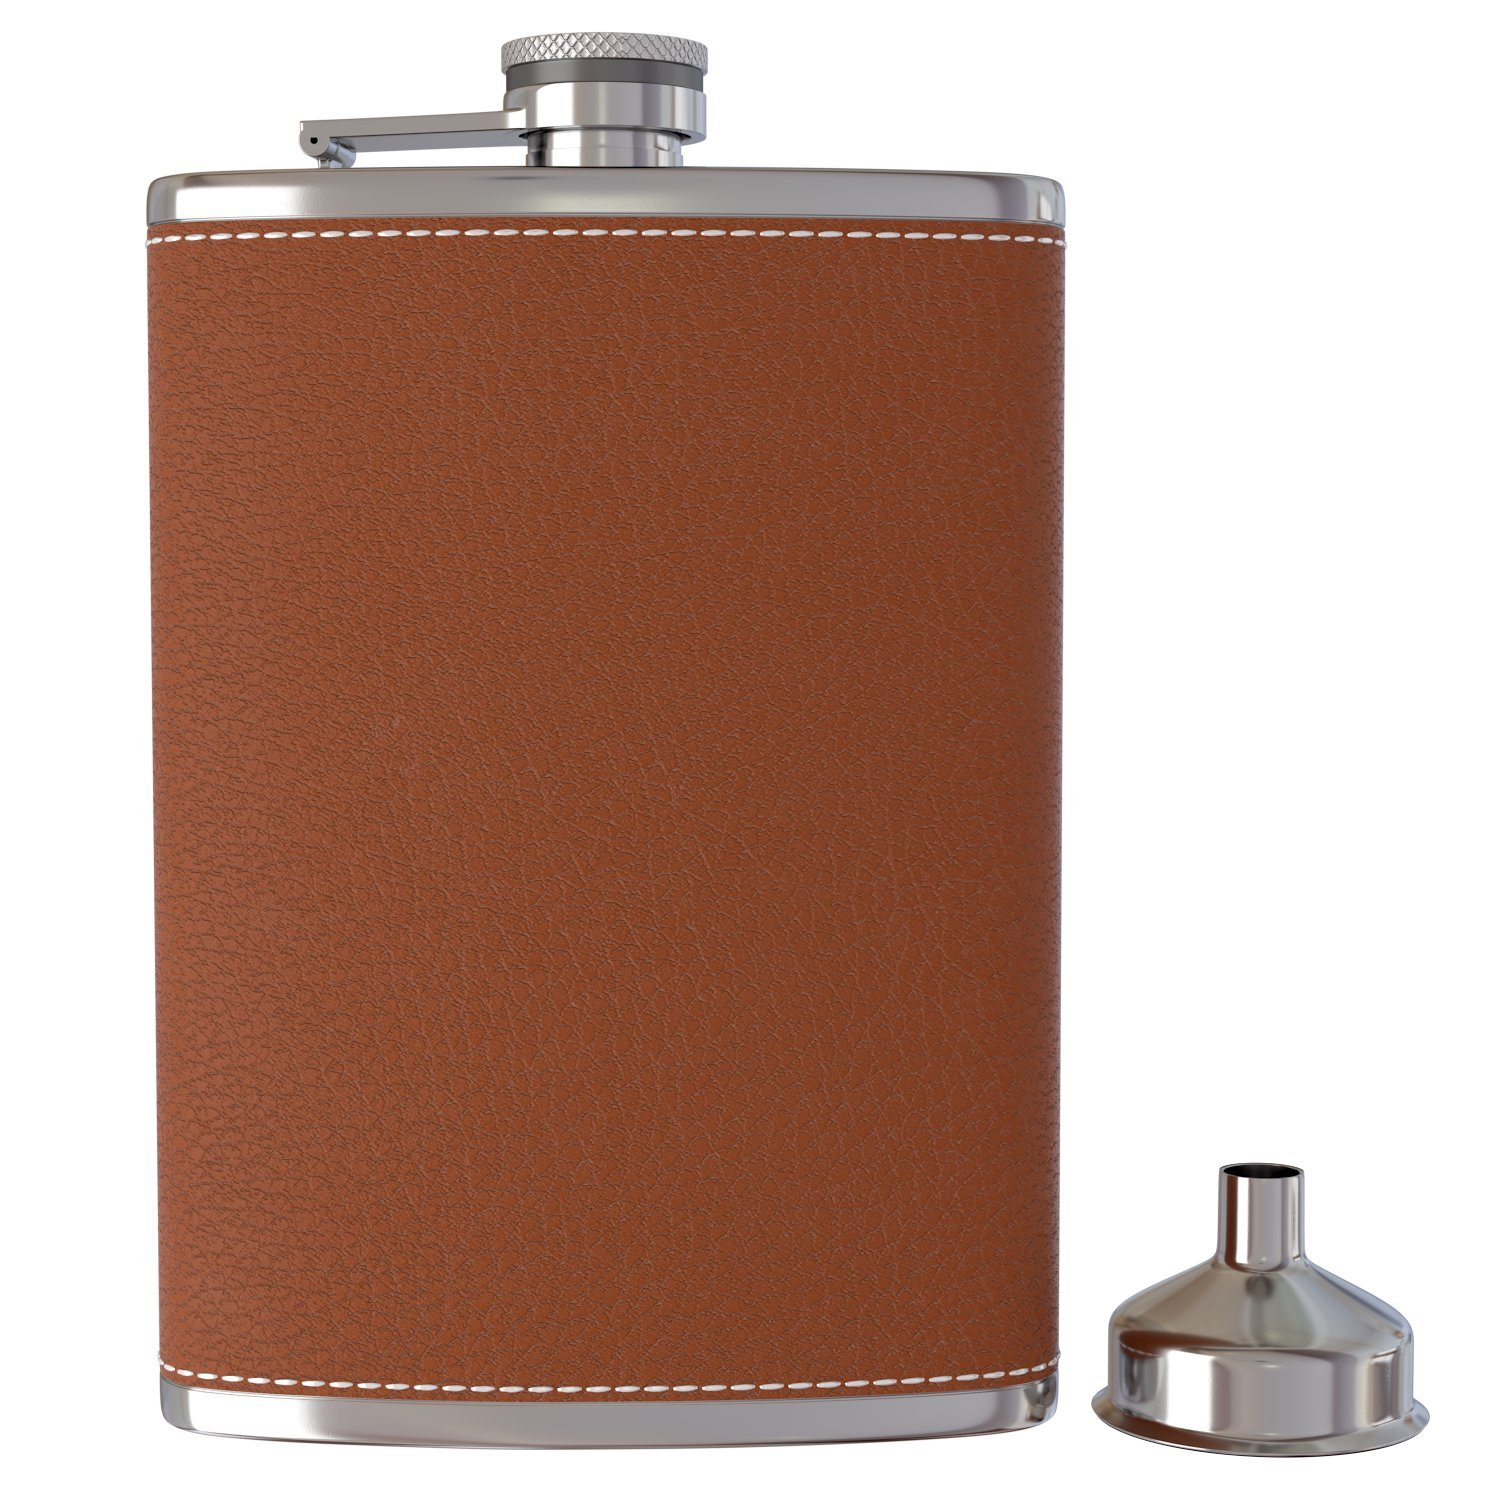 Pocket Hip Flask 8 Oz with Funnel - 18/8 Stainless Steel with Black Leather Wrapped Cover and 100% Leak Proof - Fits any Suit for Discrete Liquor Shot Drinking Uport